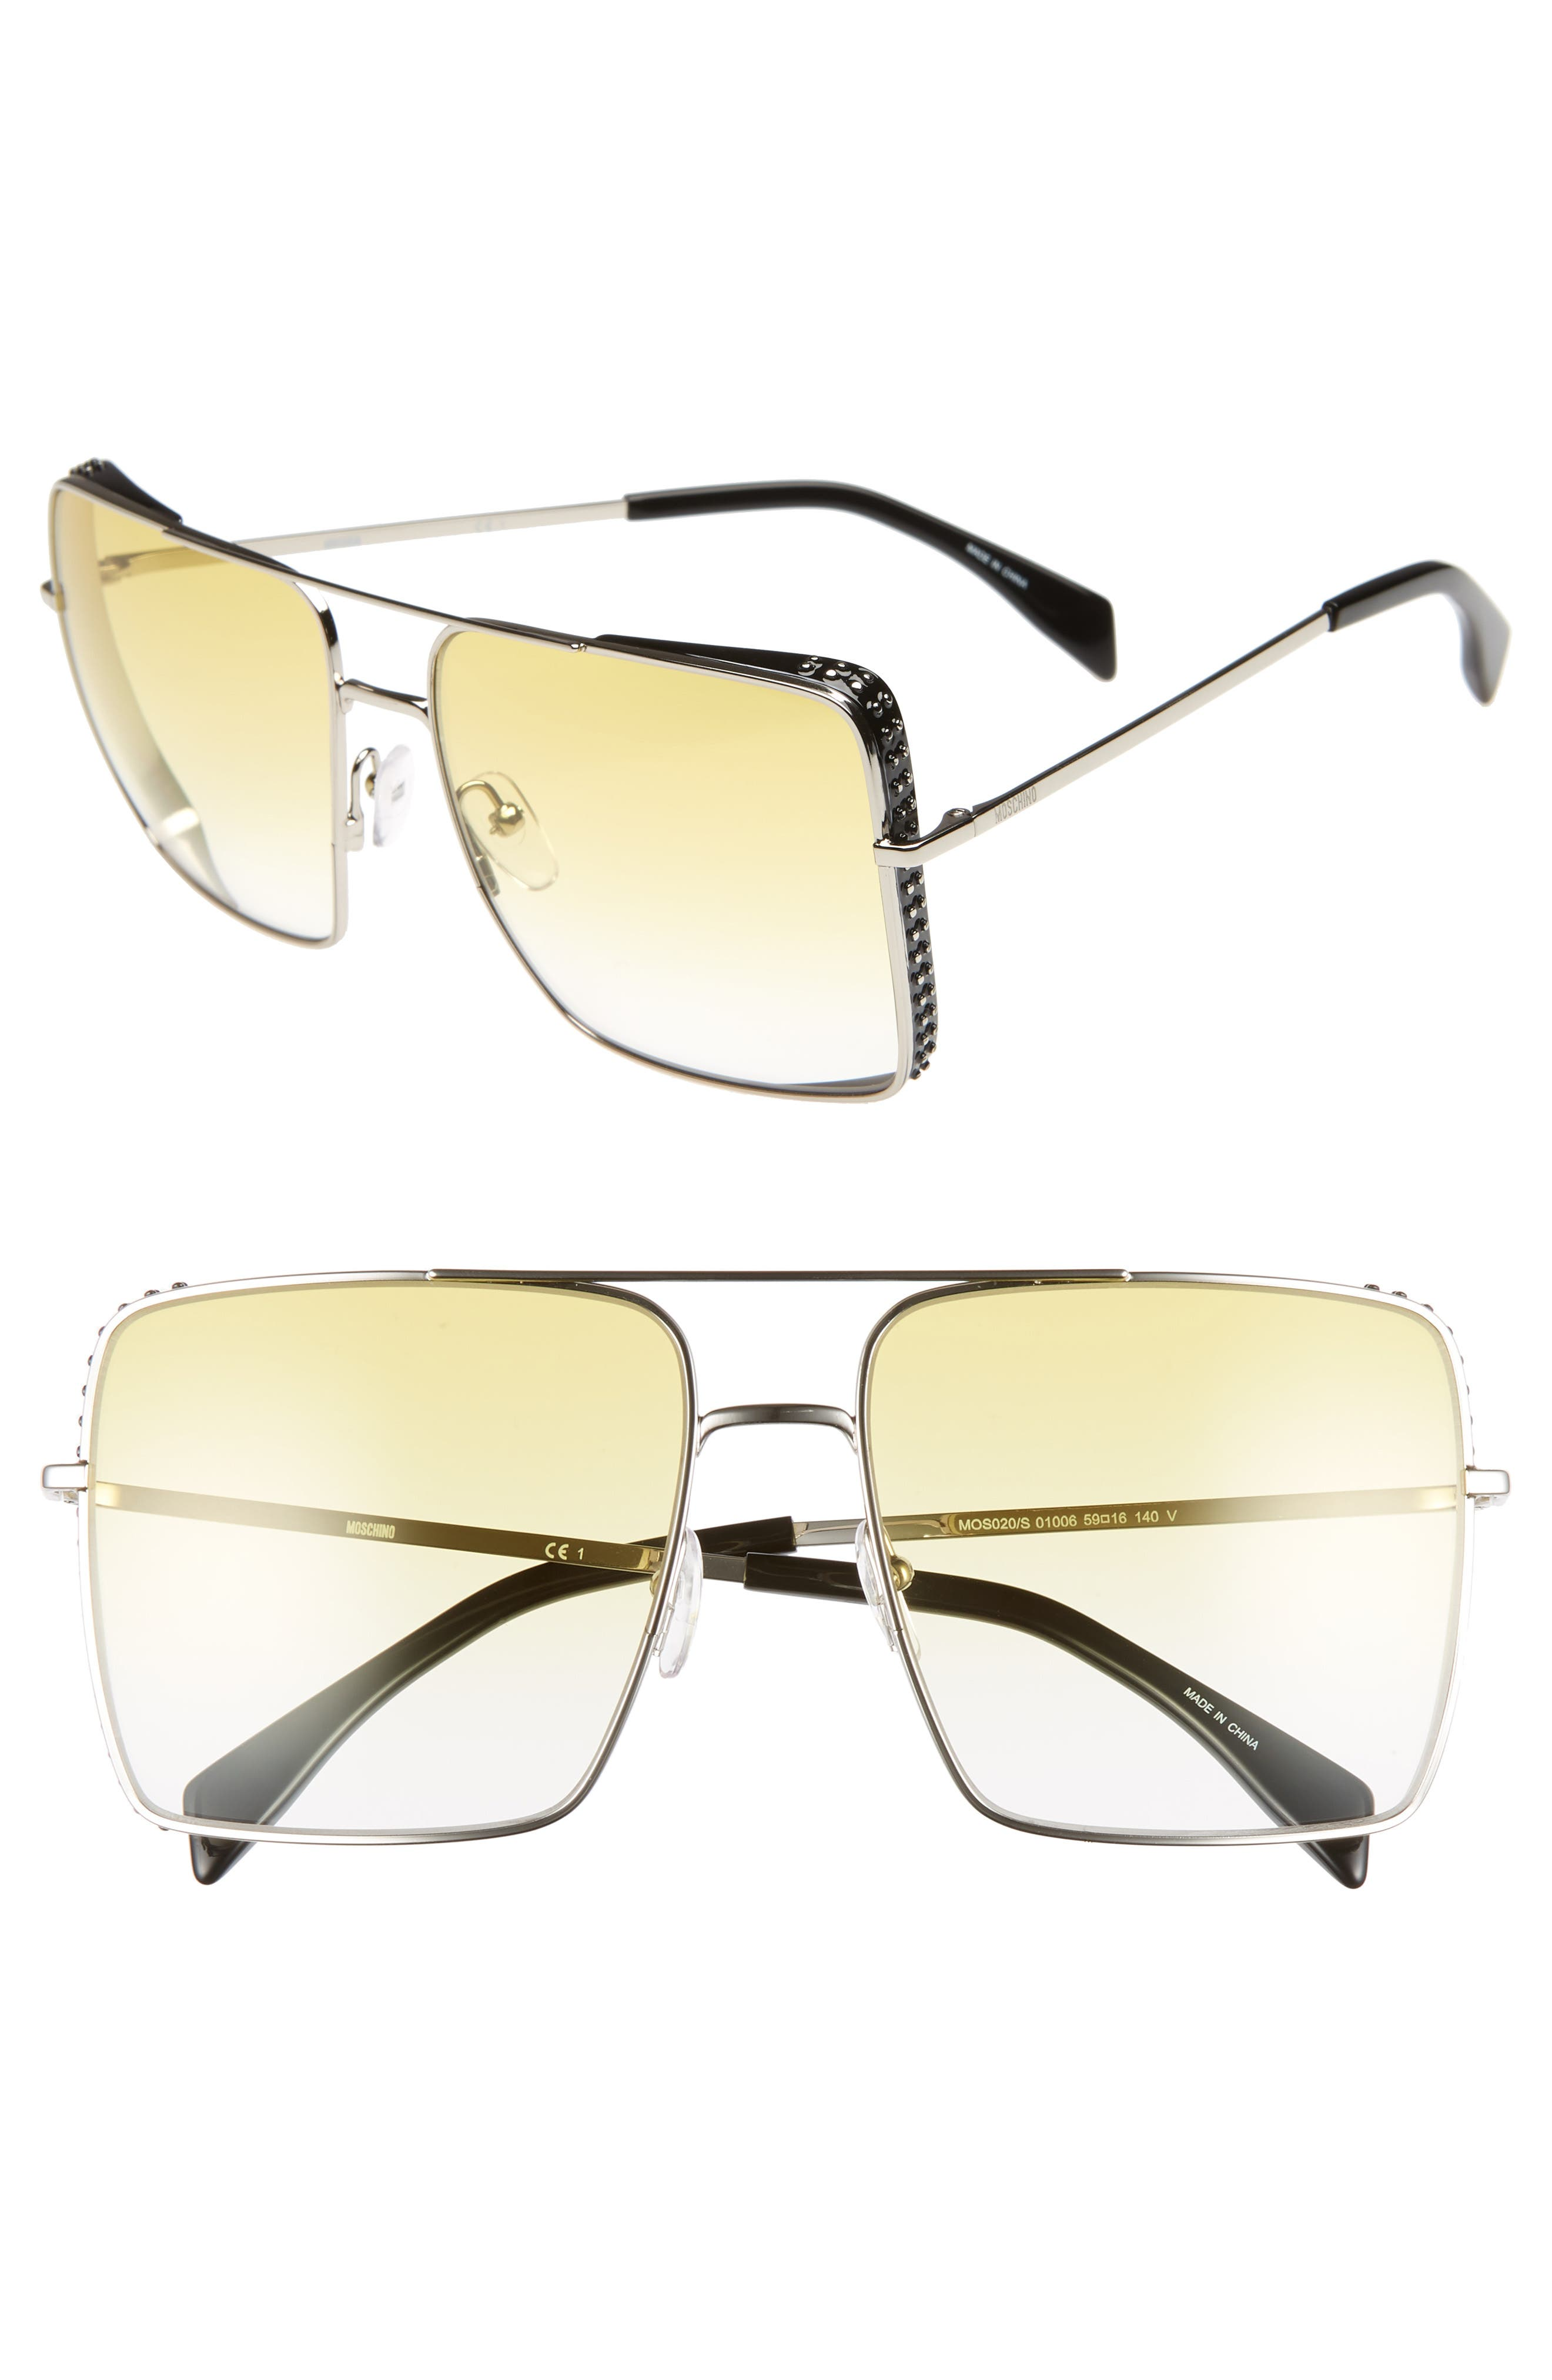 50mm Square Flat Top Sunglasses, Main, color, PALLADIUM